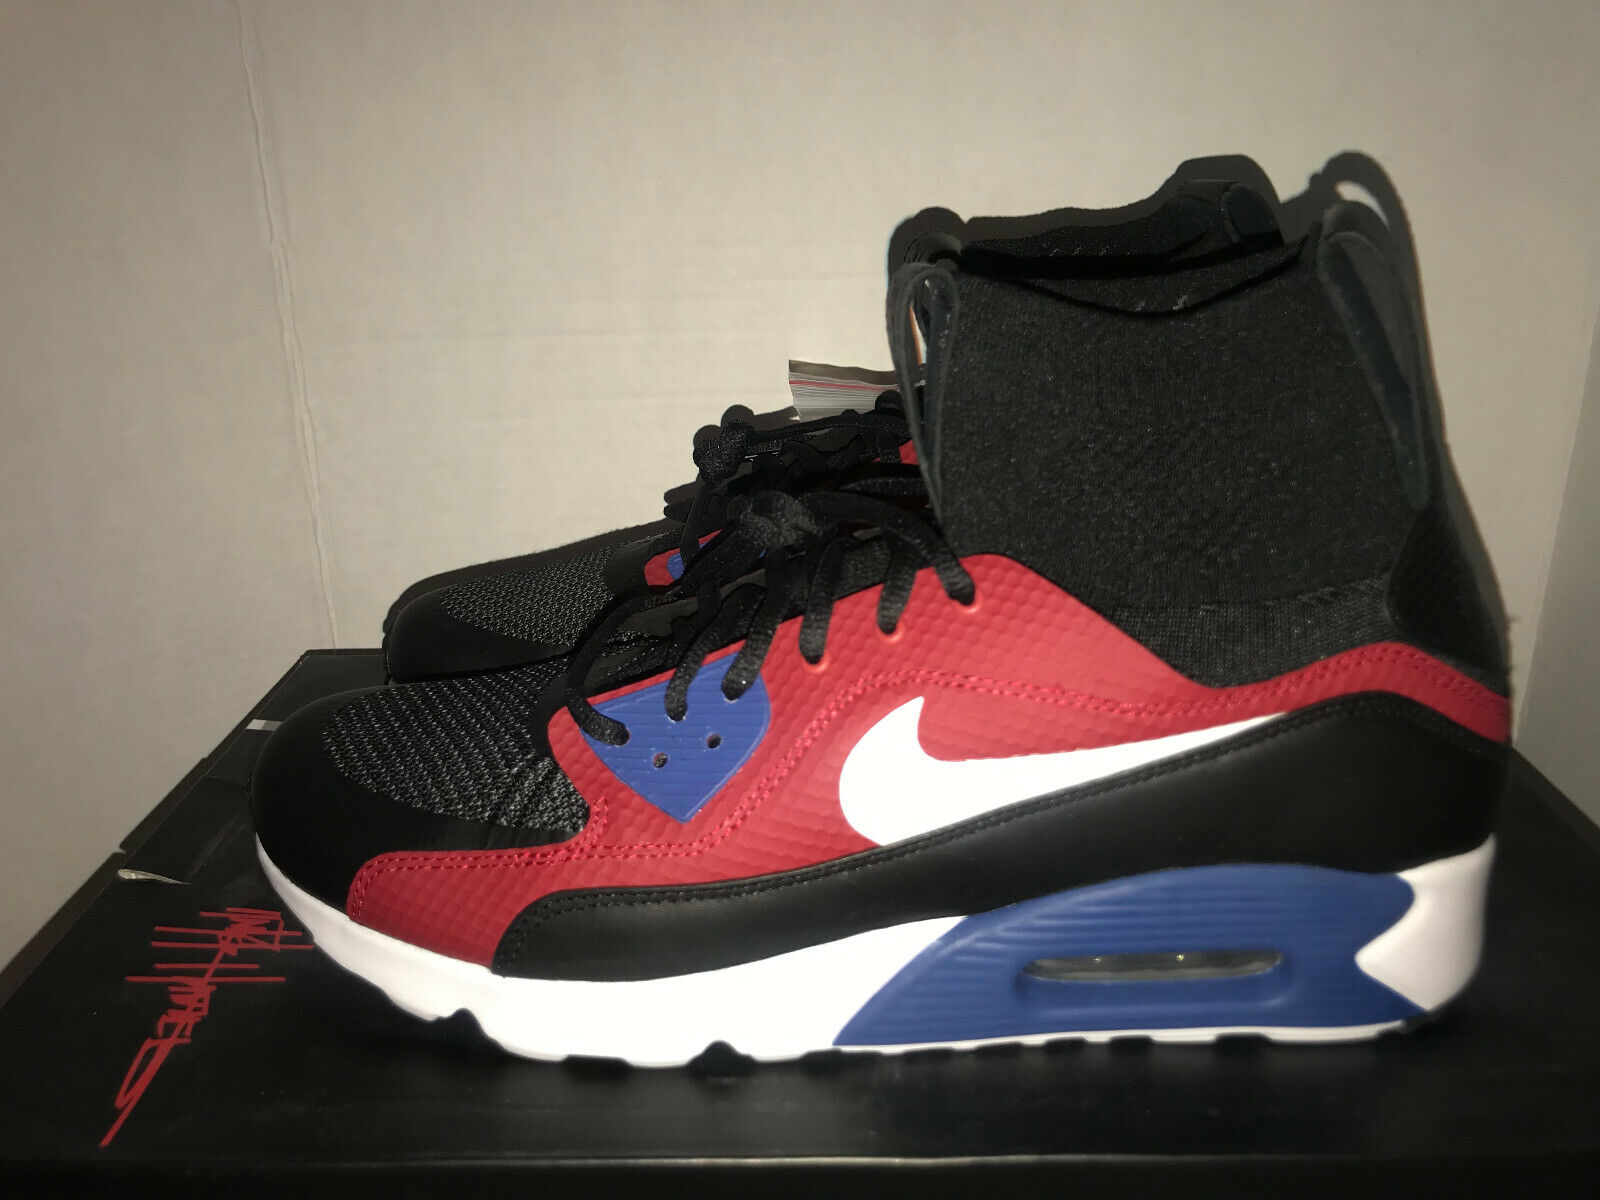 Nike Air Max Day 90 Ulta Superfly QS Tinker Size 11 850613 001